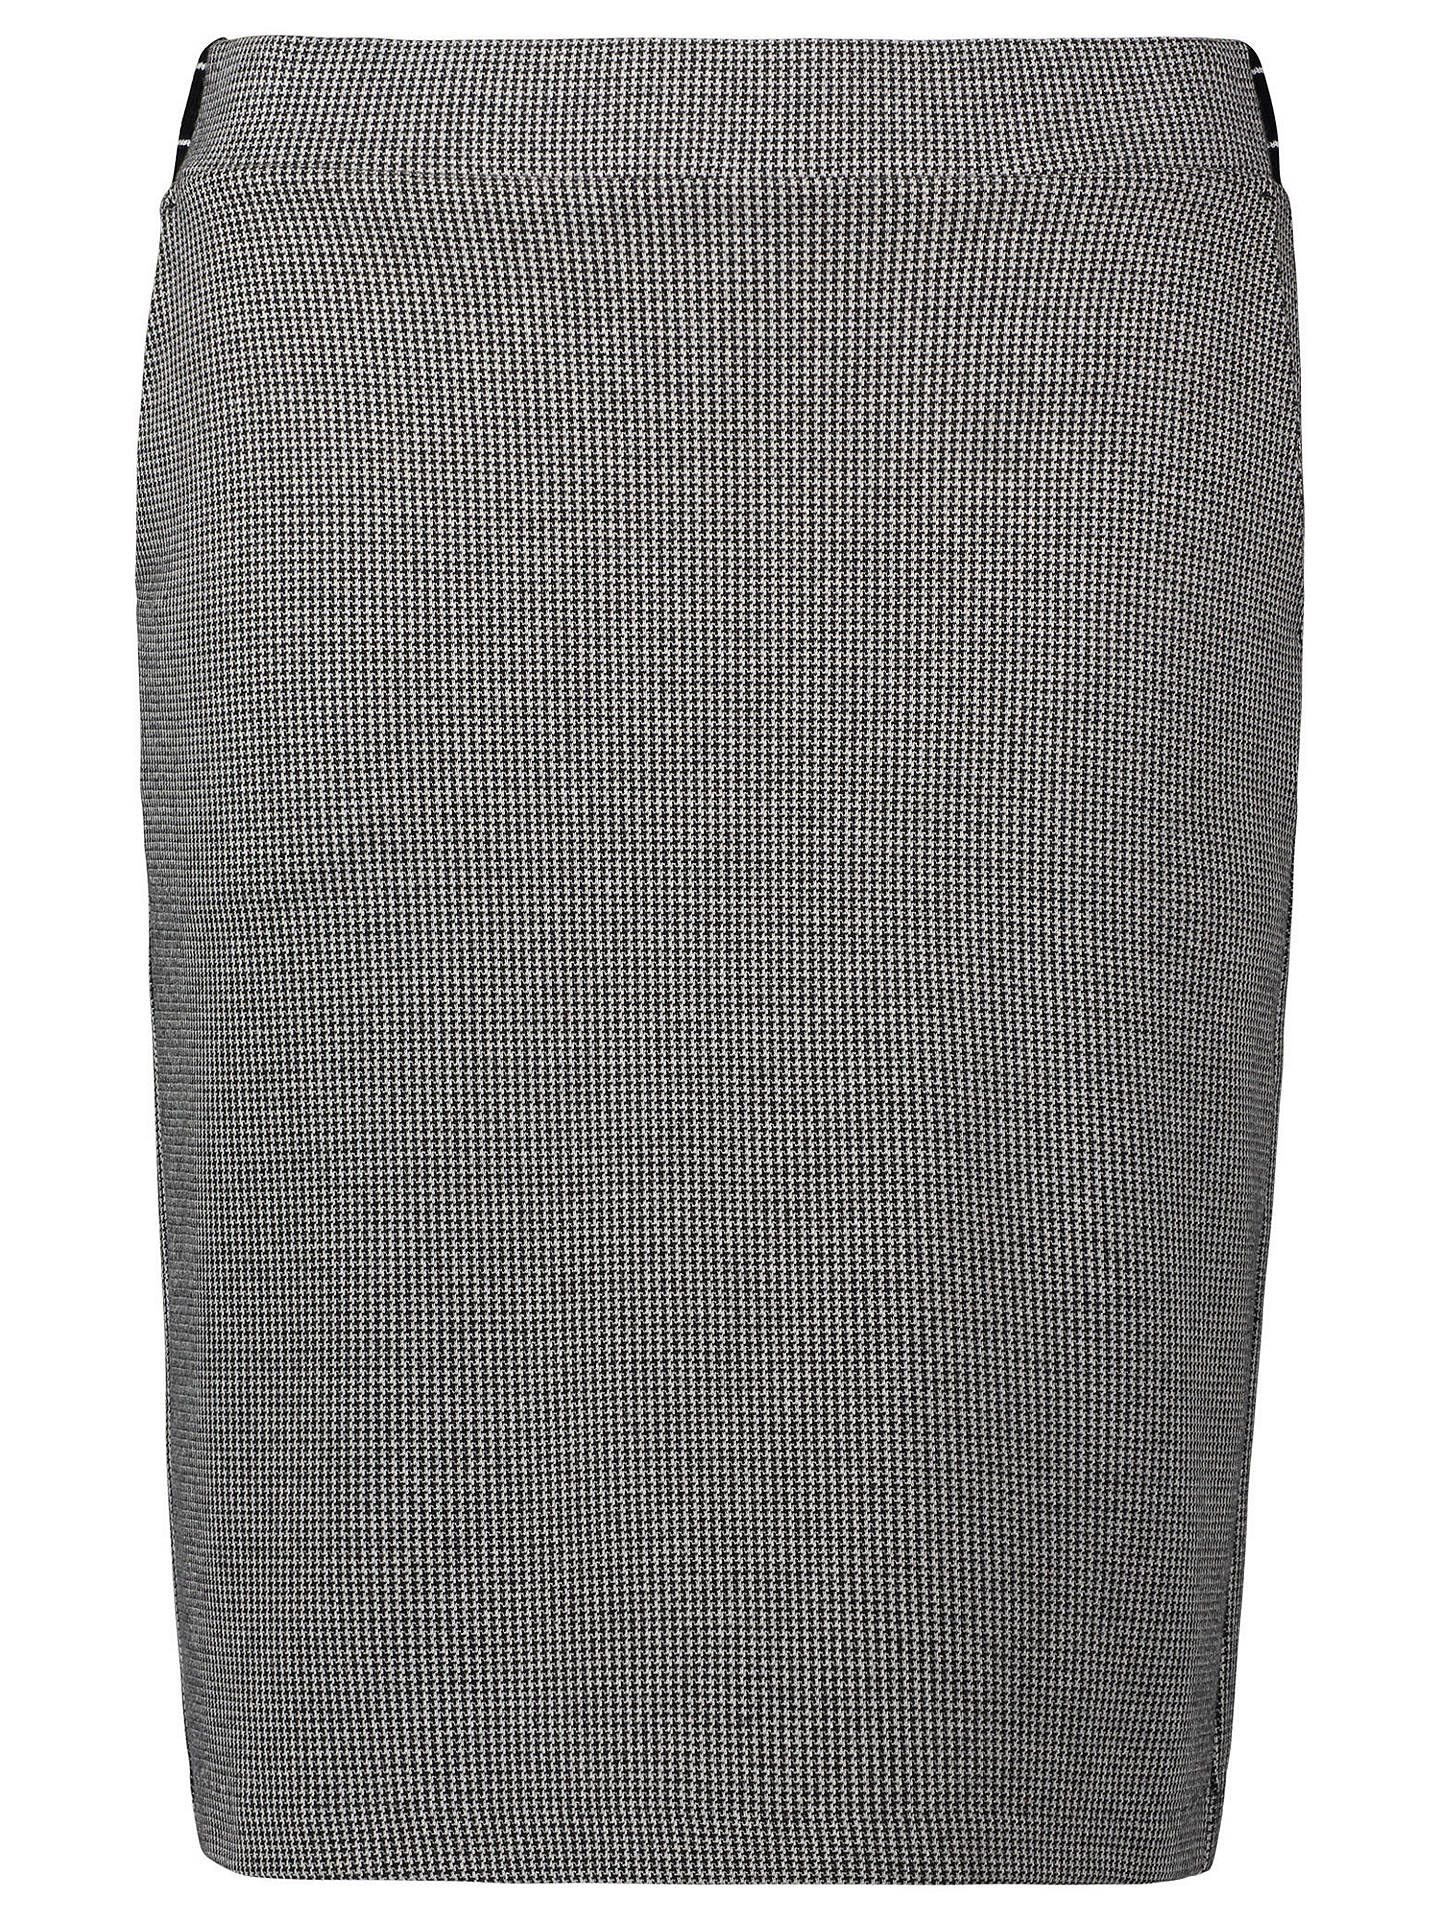 BuyBetty Barclay Houndstooth Skirt, Black/Cream, 10 Online at johnlewis.com